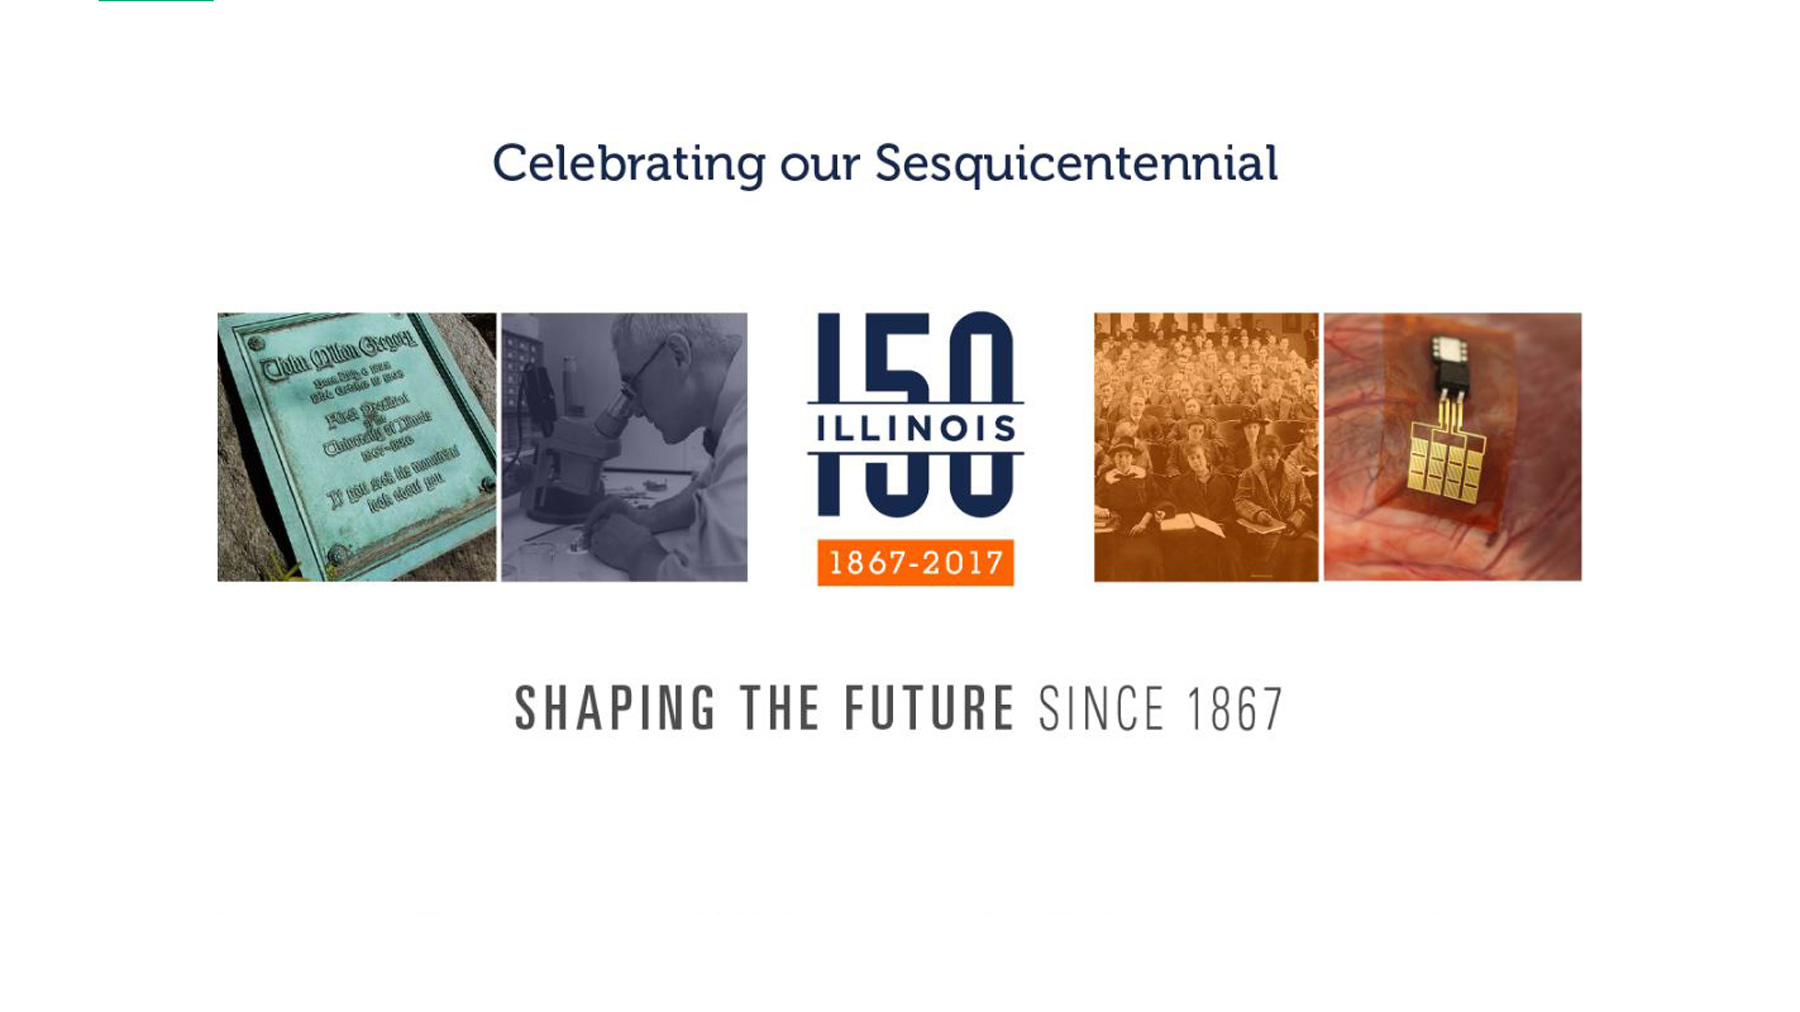 sesquicentennial graphic created by the highly talented Julie McMahon